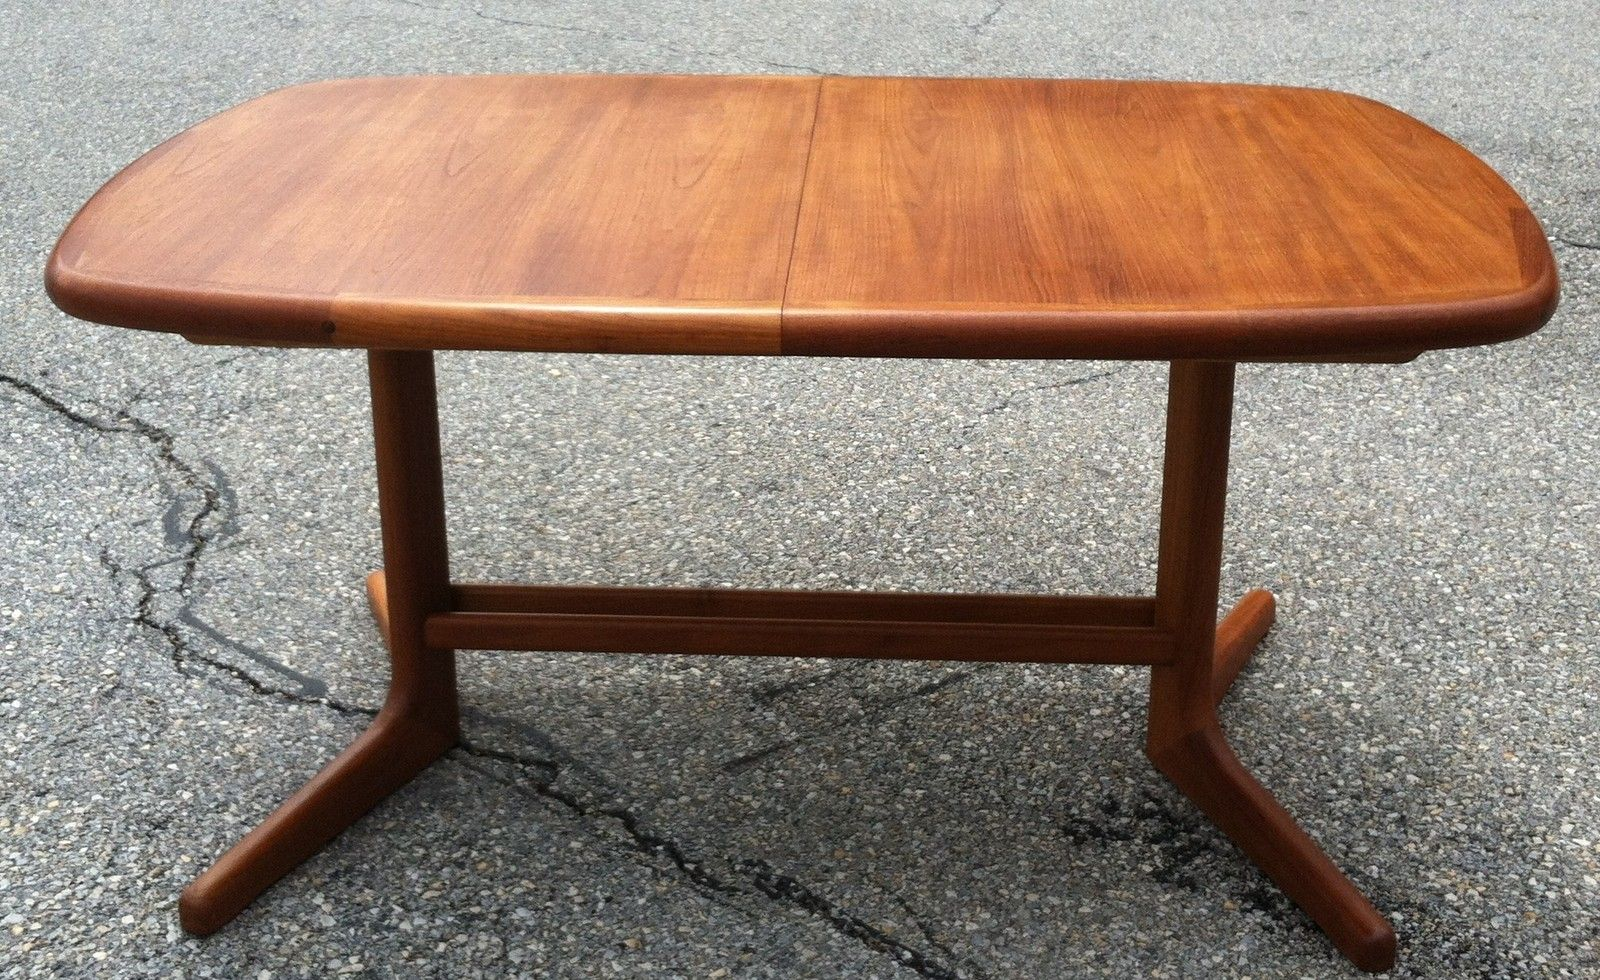 1970s danish teak dining table by skovby dyrlung offered on ebay for 1200